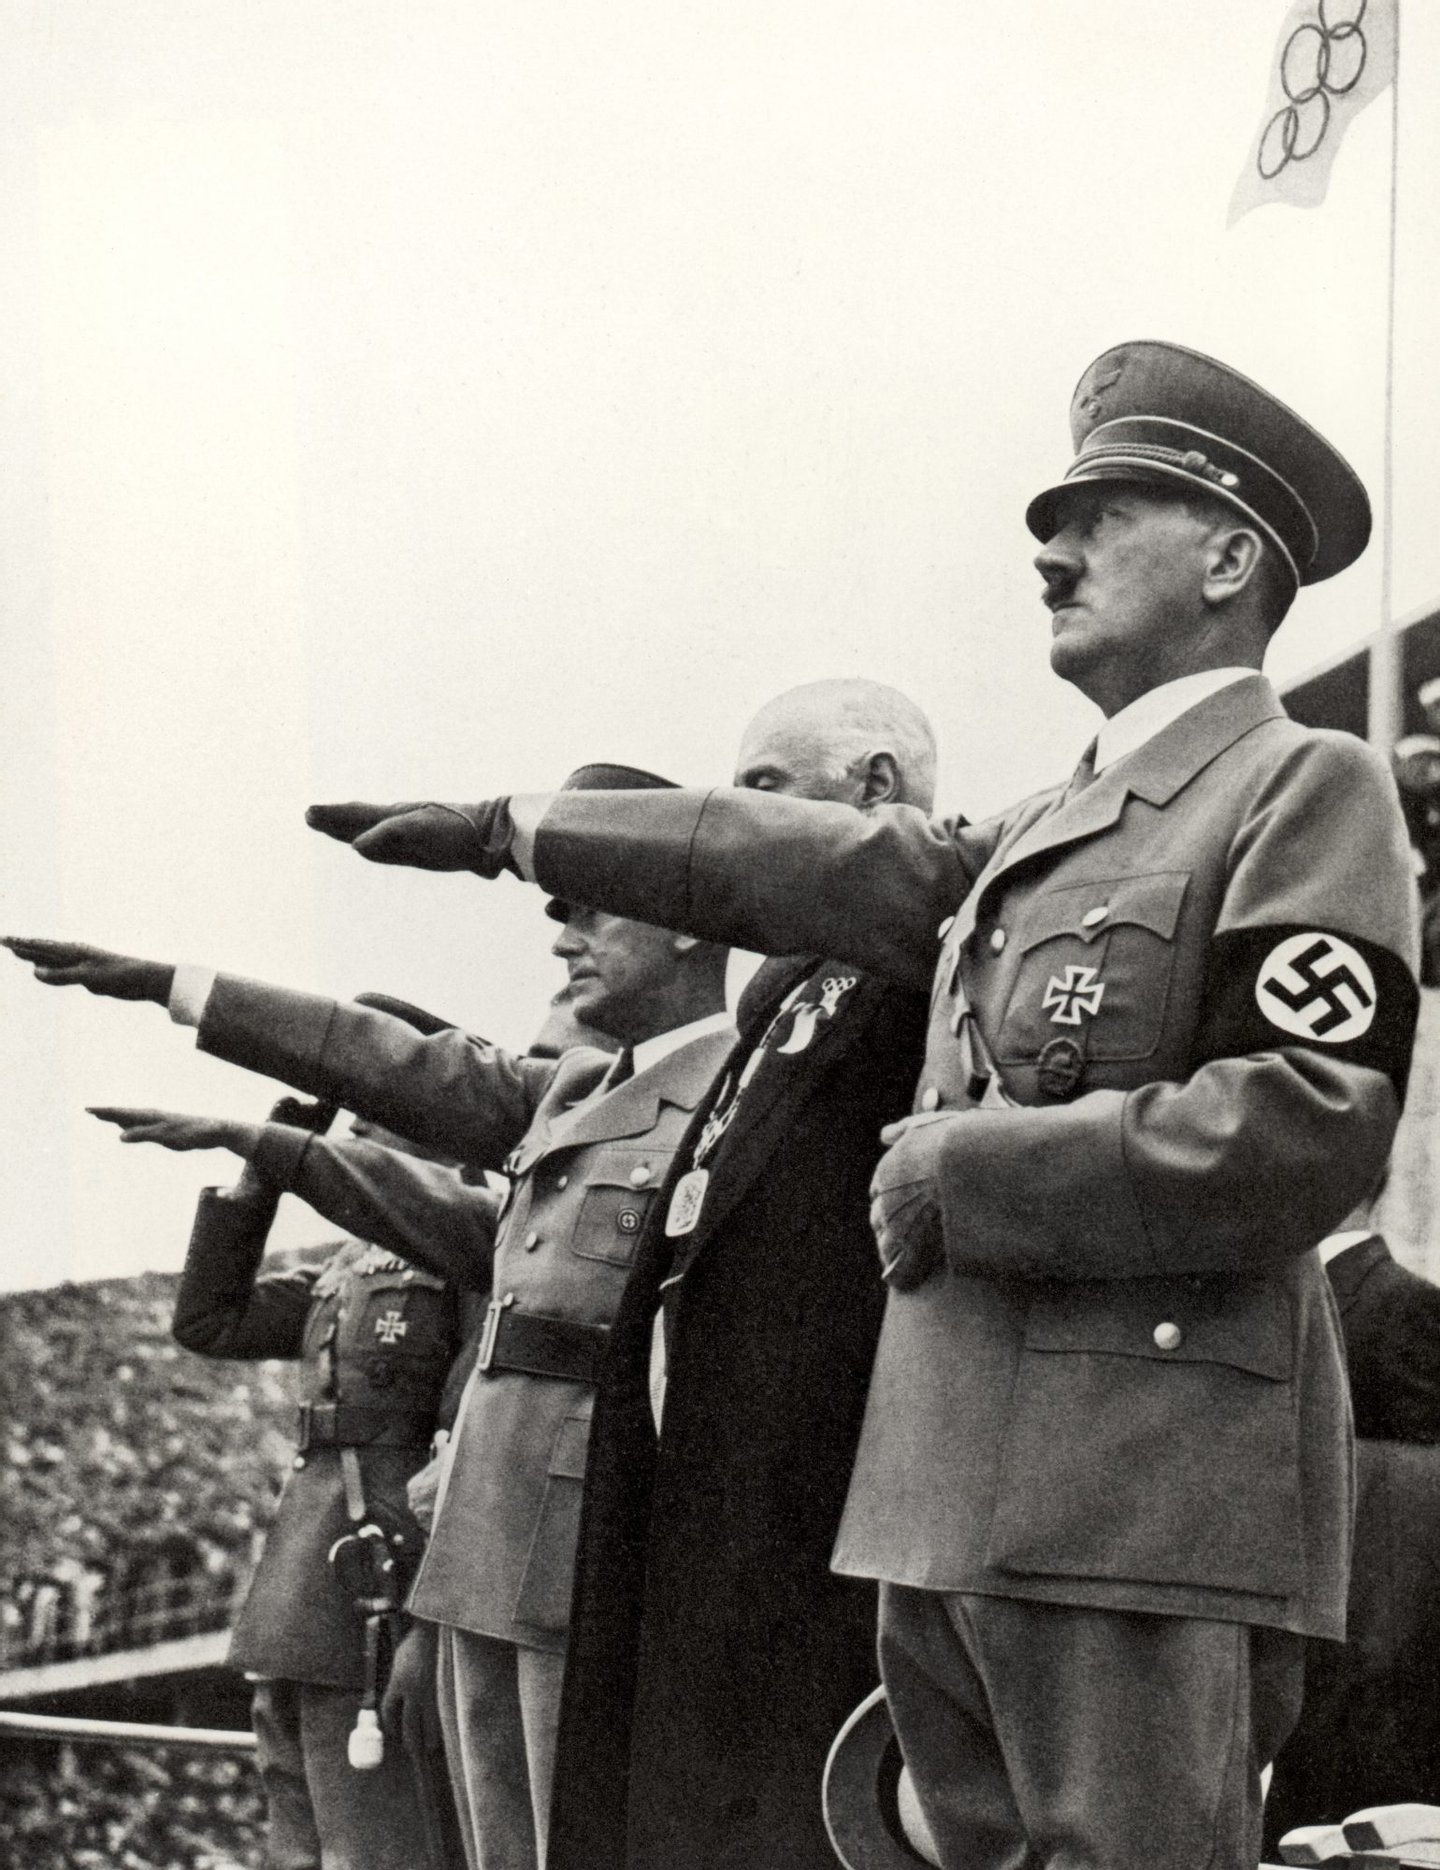 BERLIN - AUGUST 1: Adolf Hitler and his staff salute the teams during the opening ceremonies of the XI Olympic Games on August 1, 936 in Berlin, Germany. (Photo by Getty Images)